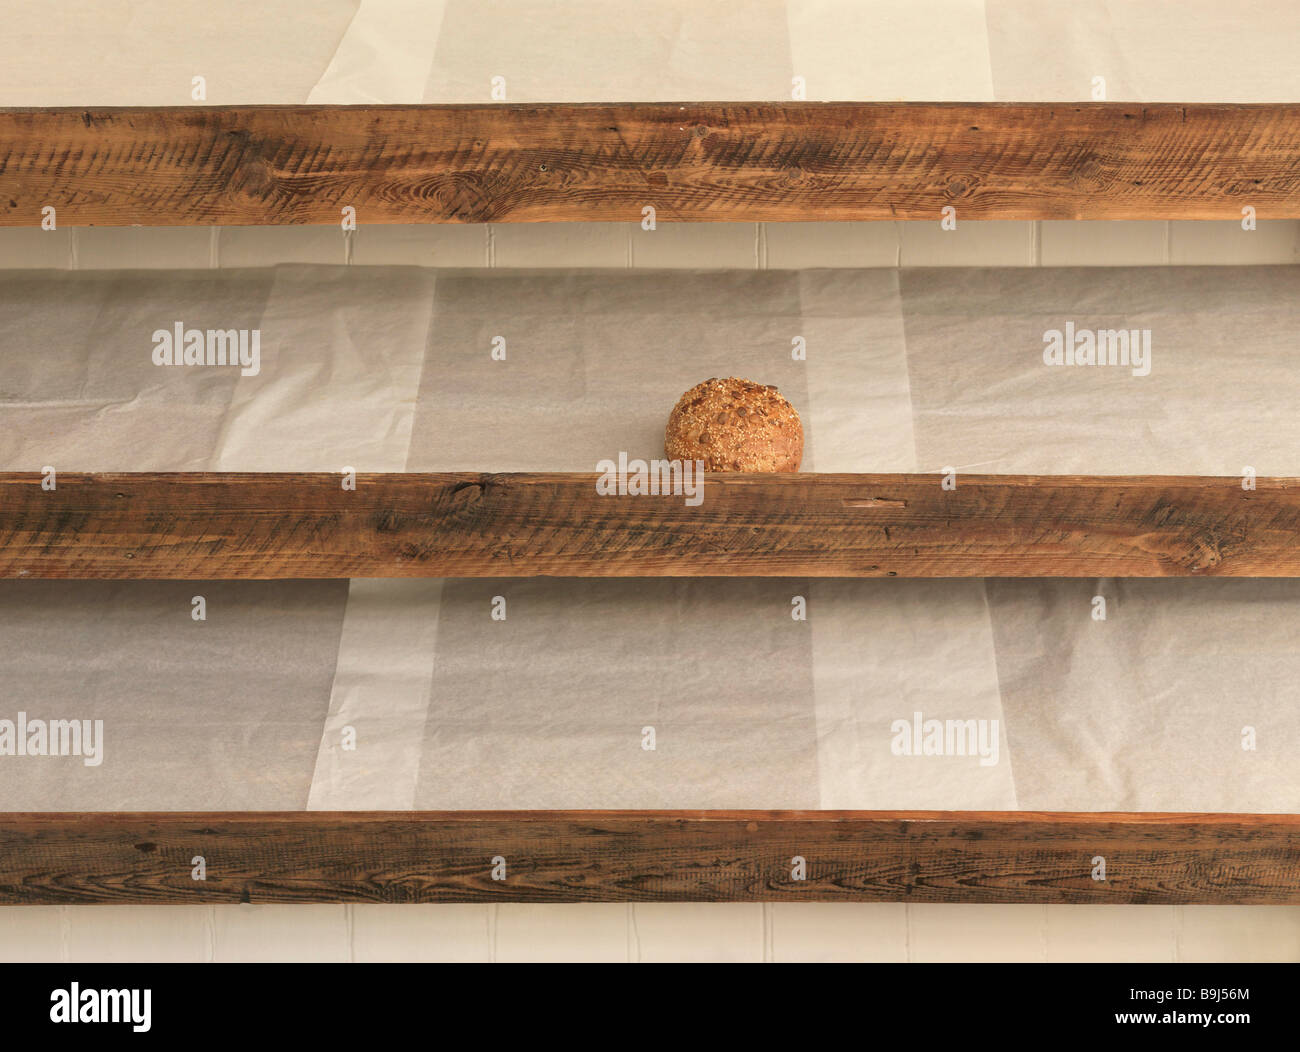 Sole remaining bread on shelf in bakery - Stock Image